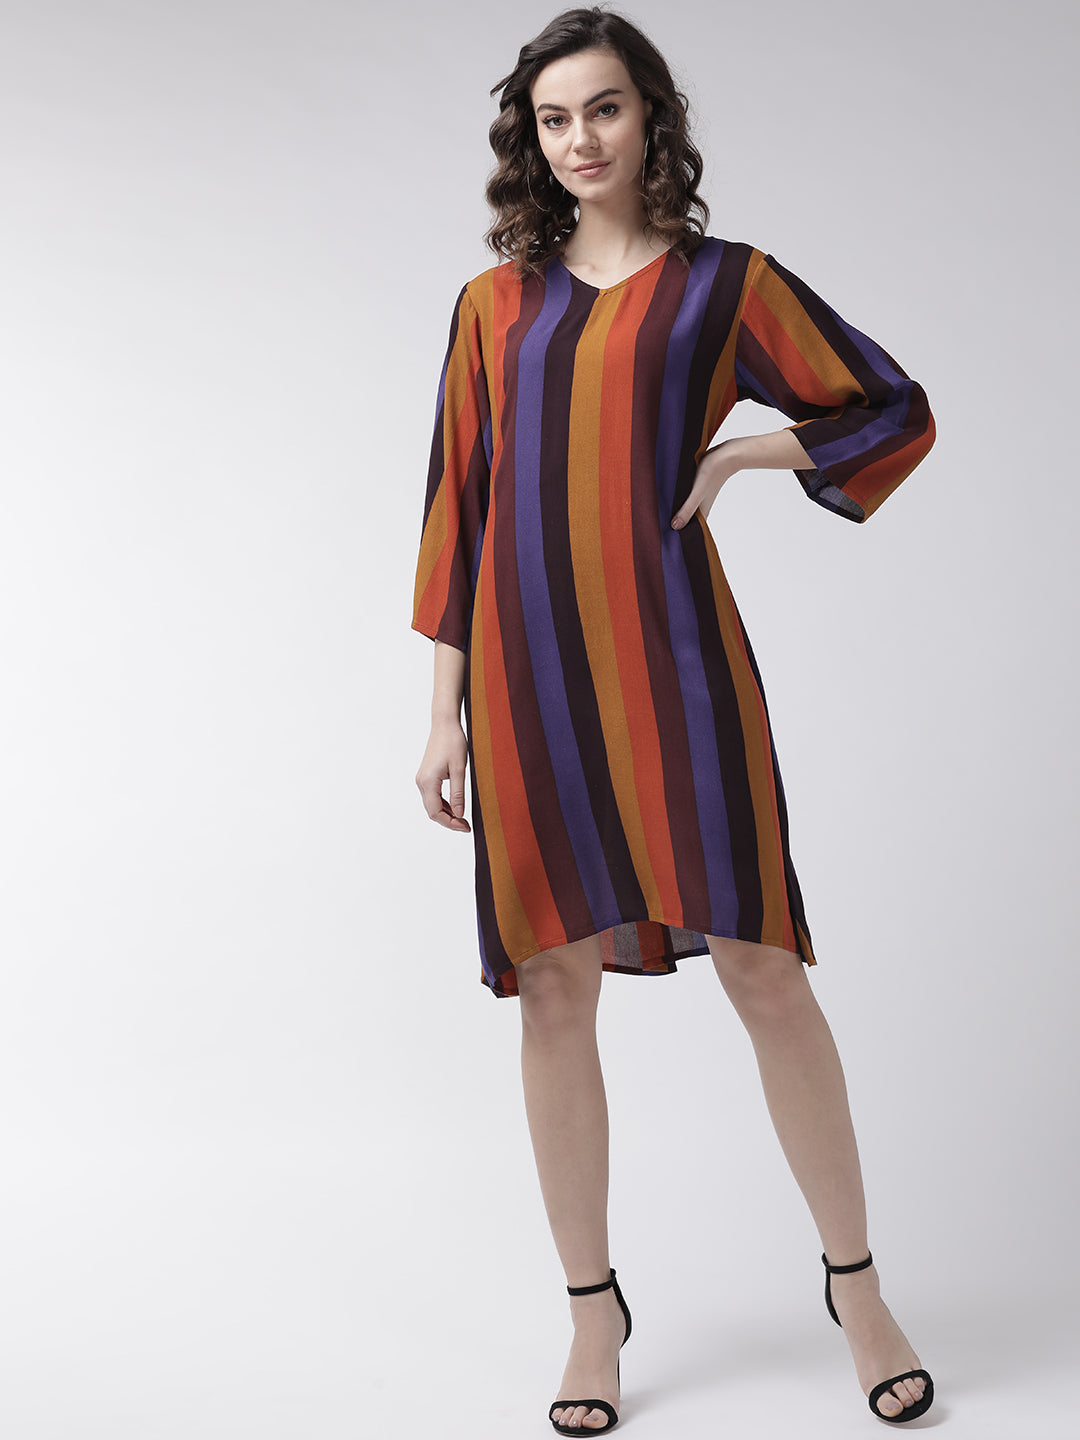 Women Mustard Yellow & Rust Orange Striped A-Line Dress